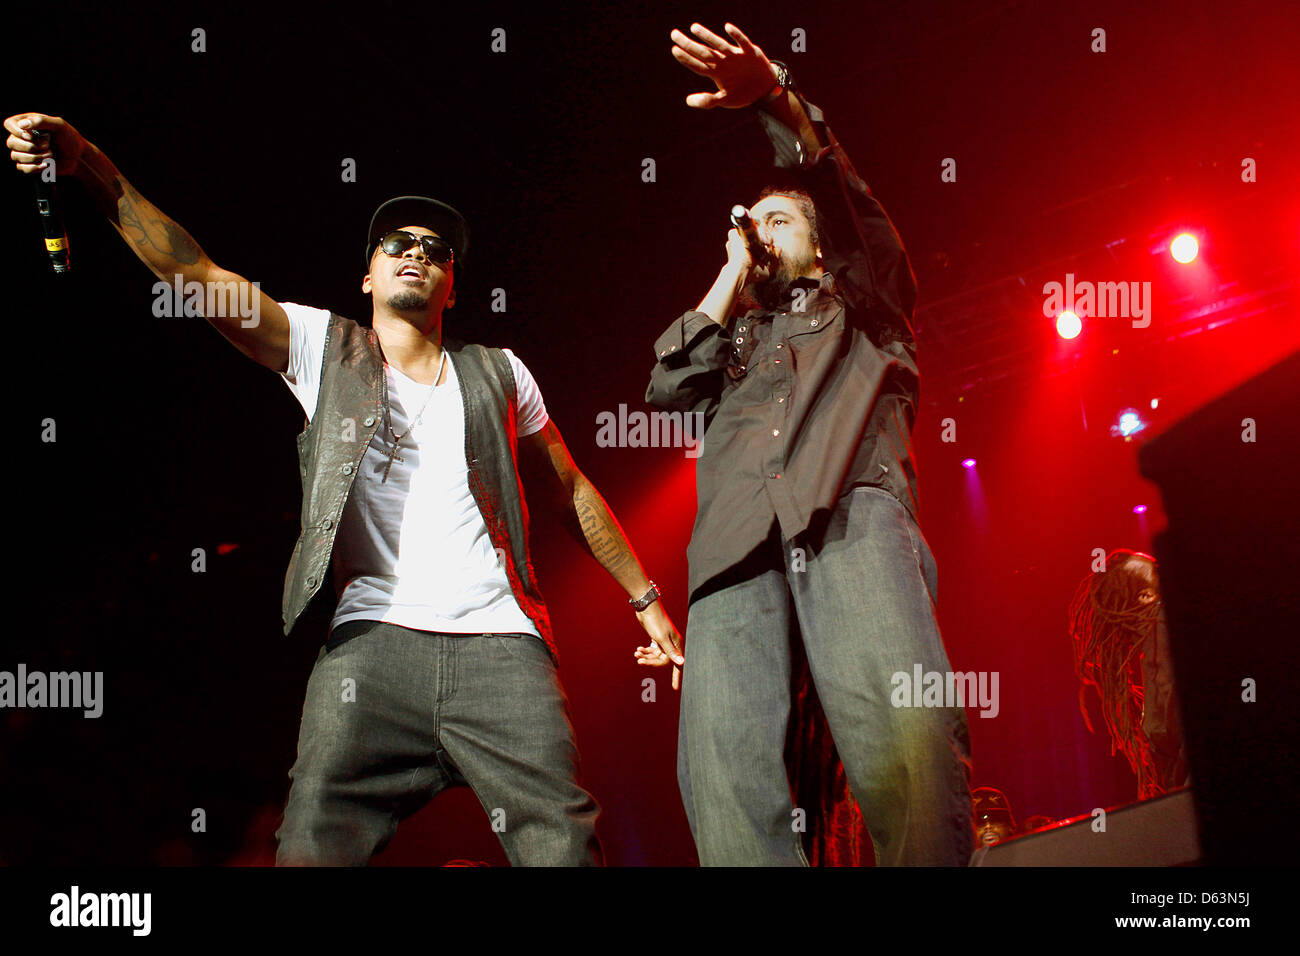 Nas and Damian Marley performing live together at Wembley Arena London, England - 31.03.11 - Stock Image